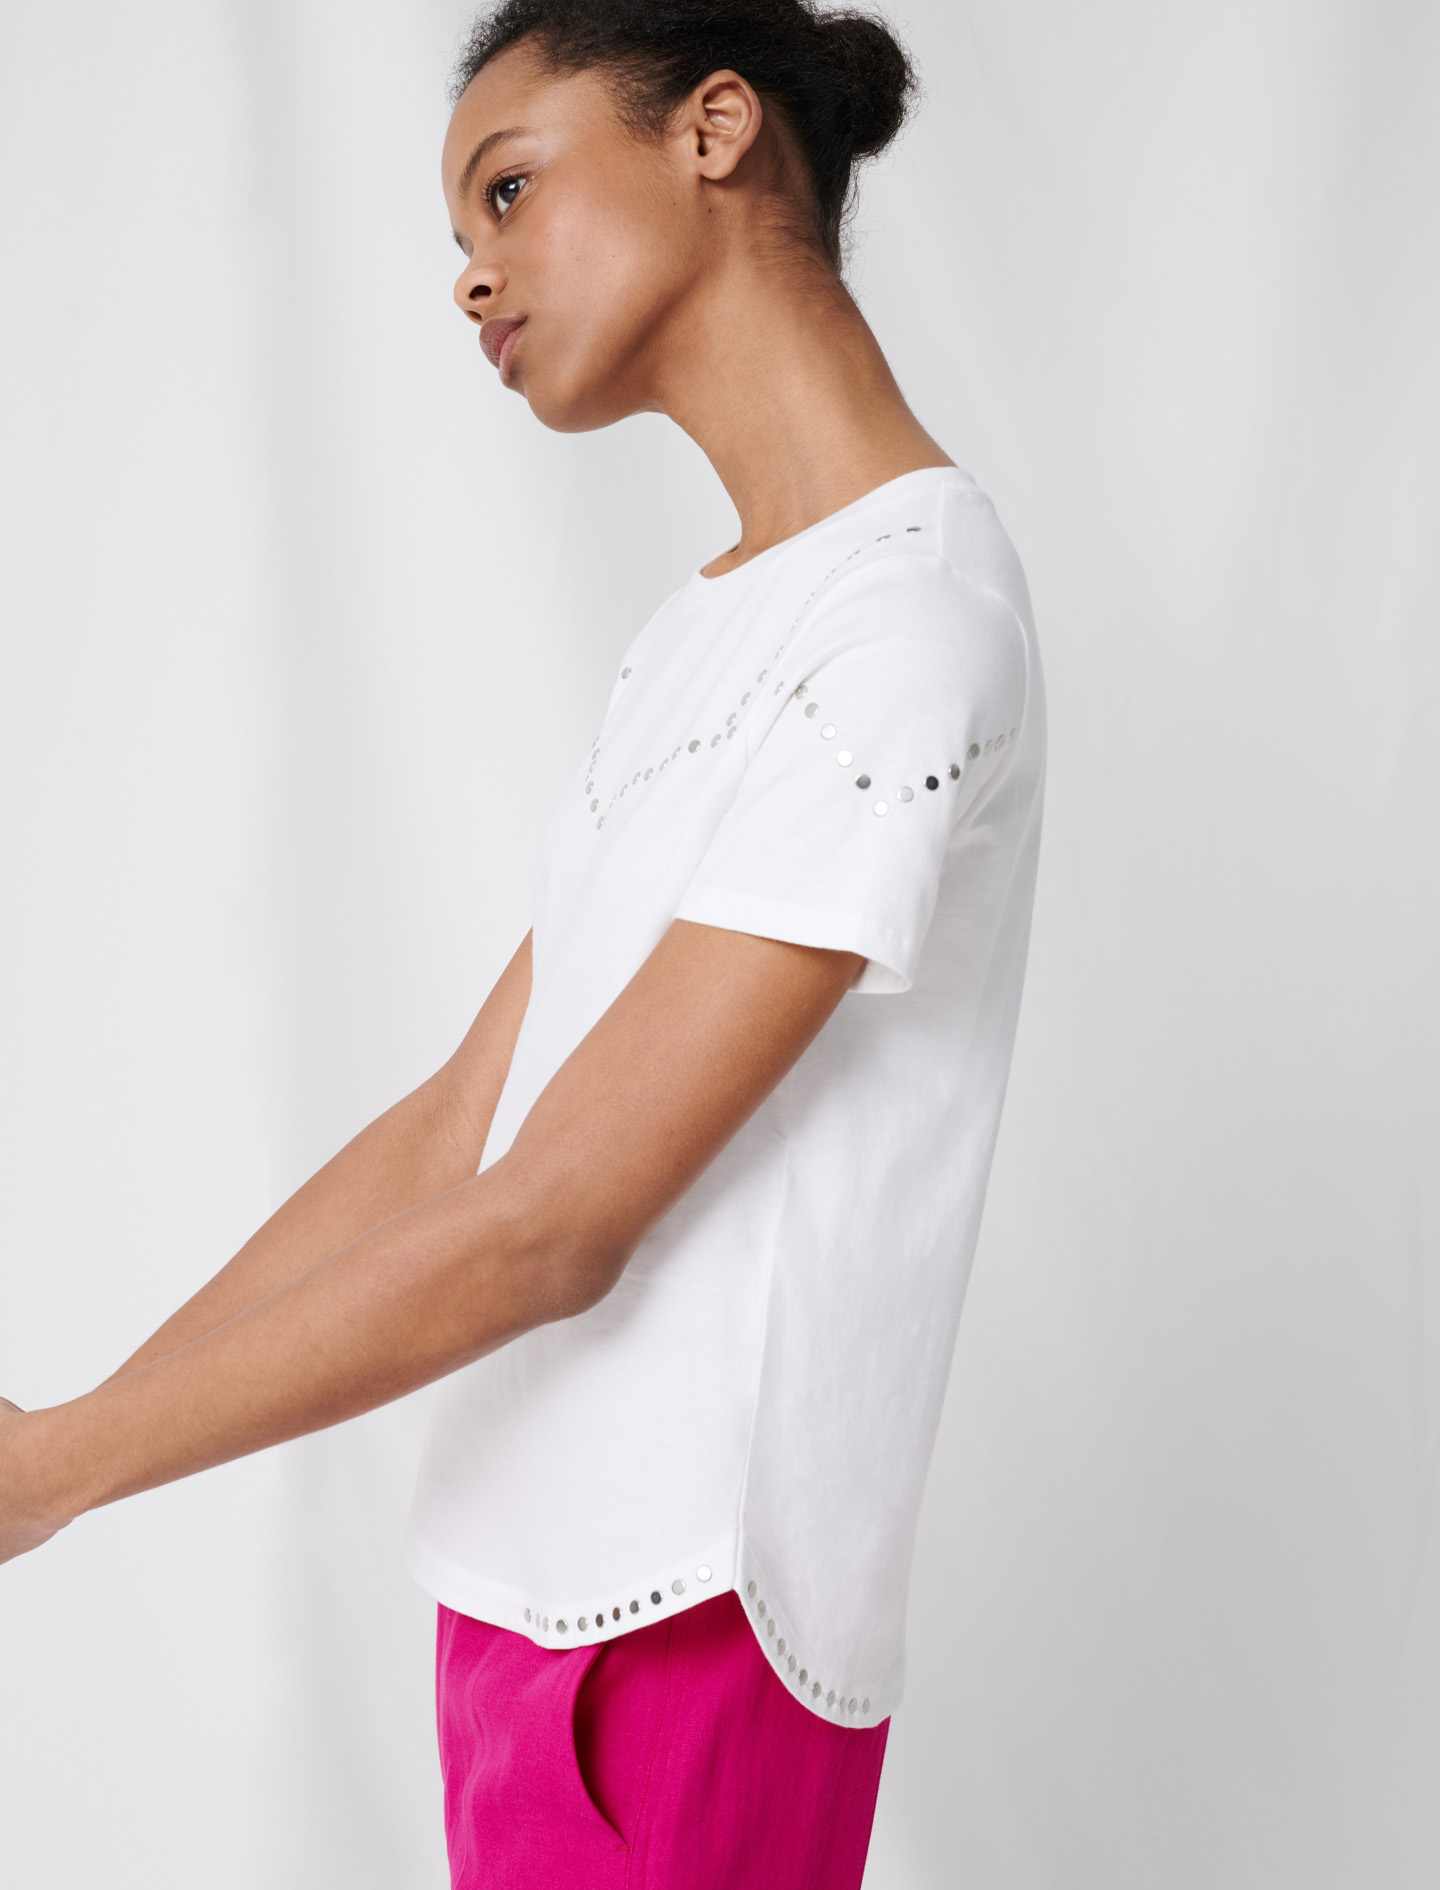 Studded white T shirt - White